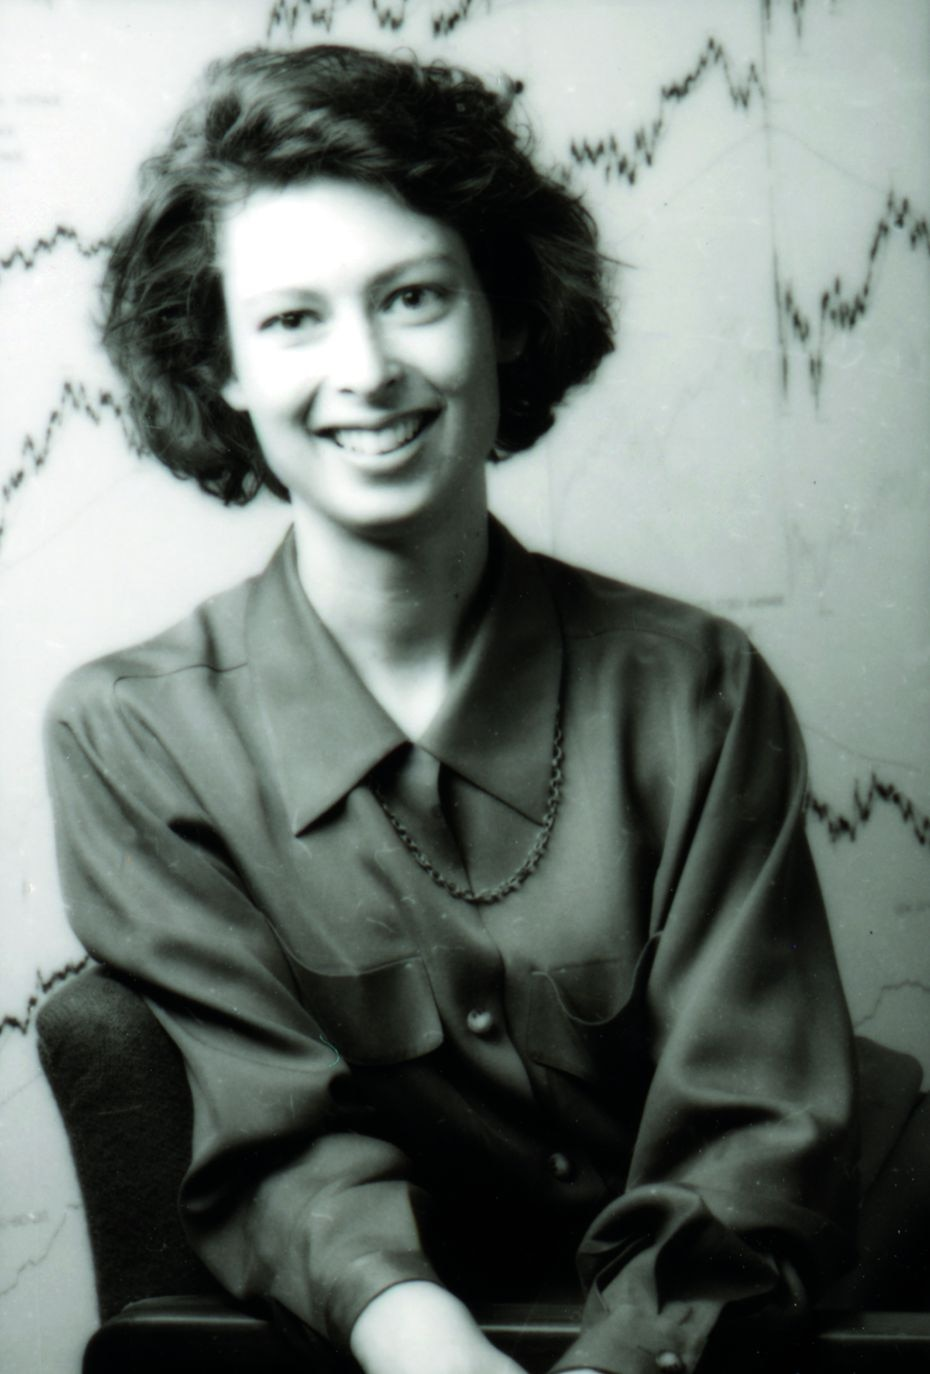 Abby Johnson as a Fidelity investment professional early in her career in the 1990s.